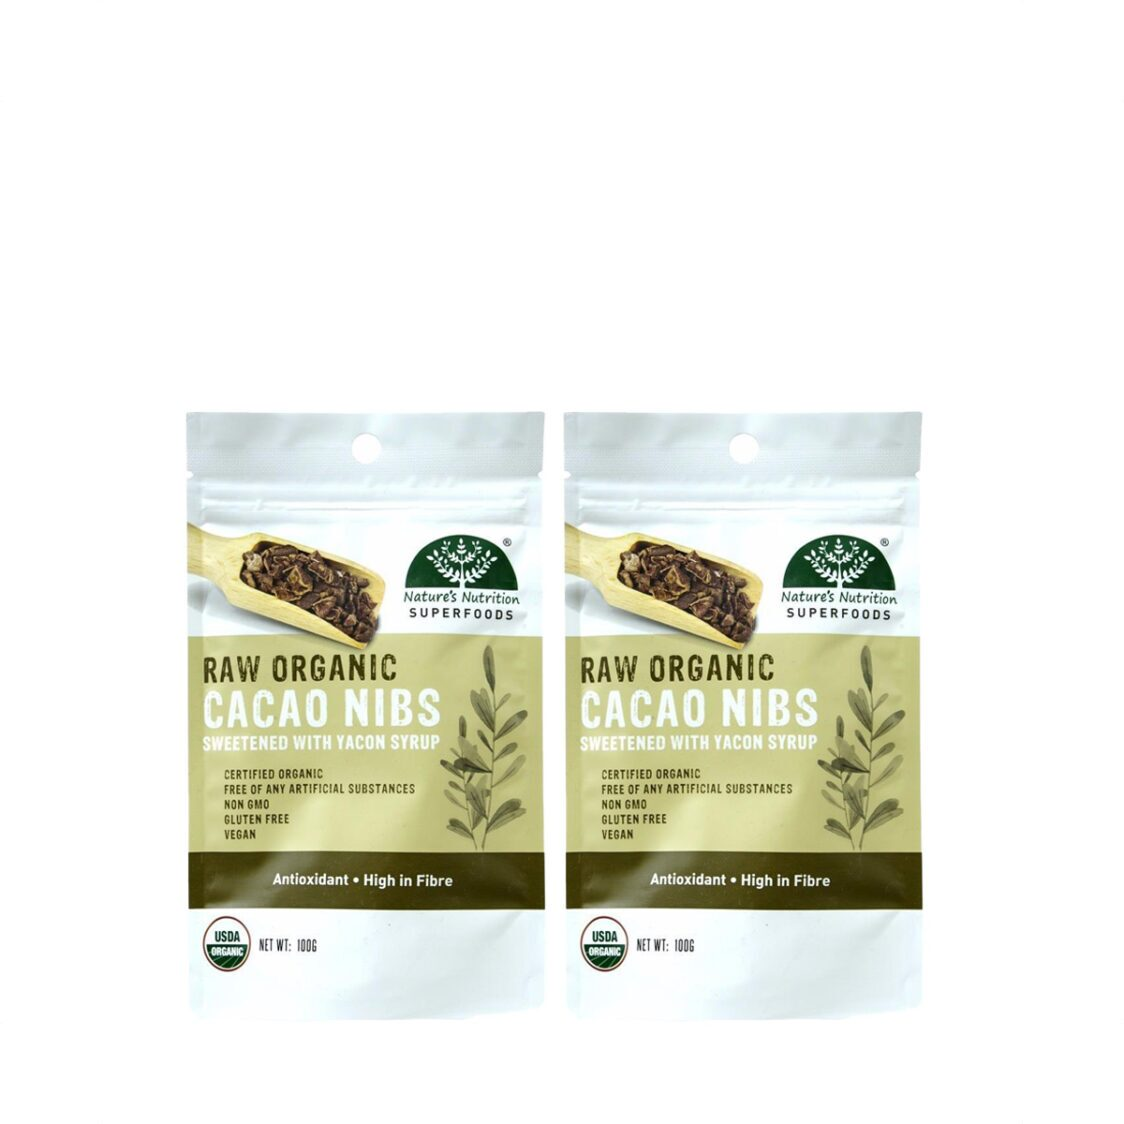 Natures Nutrition Organic Cacao Nibs with Yacon Syrup 100g Bundle of 2